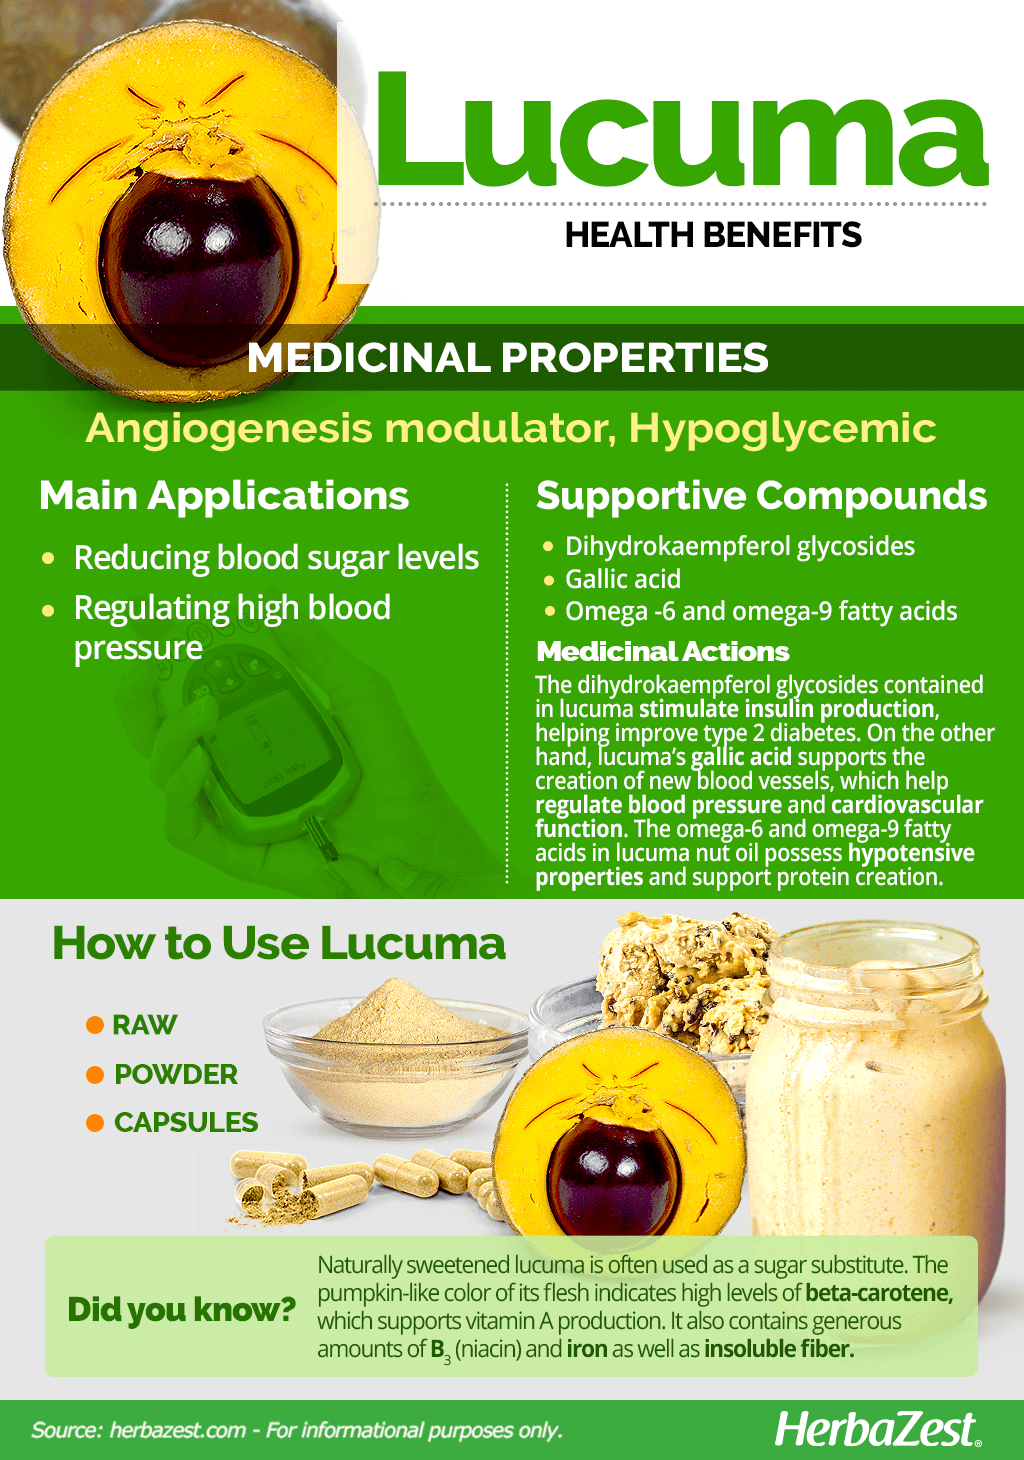 All About Lucuma